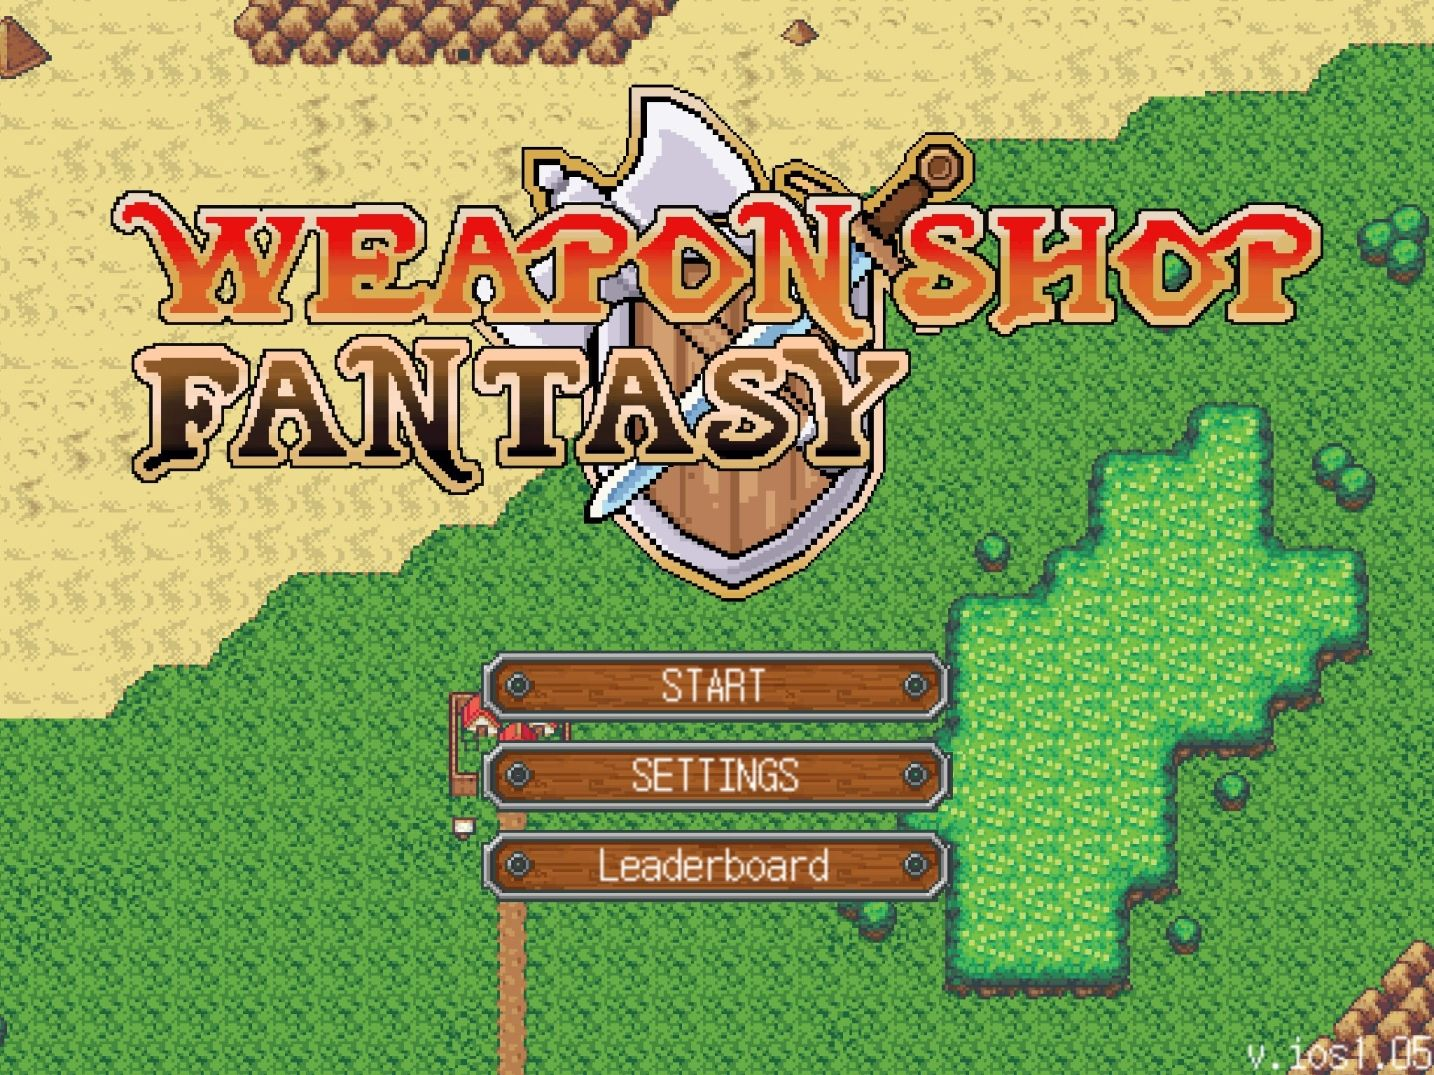 Weapon Shop Fantasy (copie d'écran 1 sur iPhone / iPad)